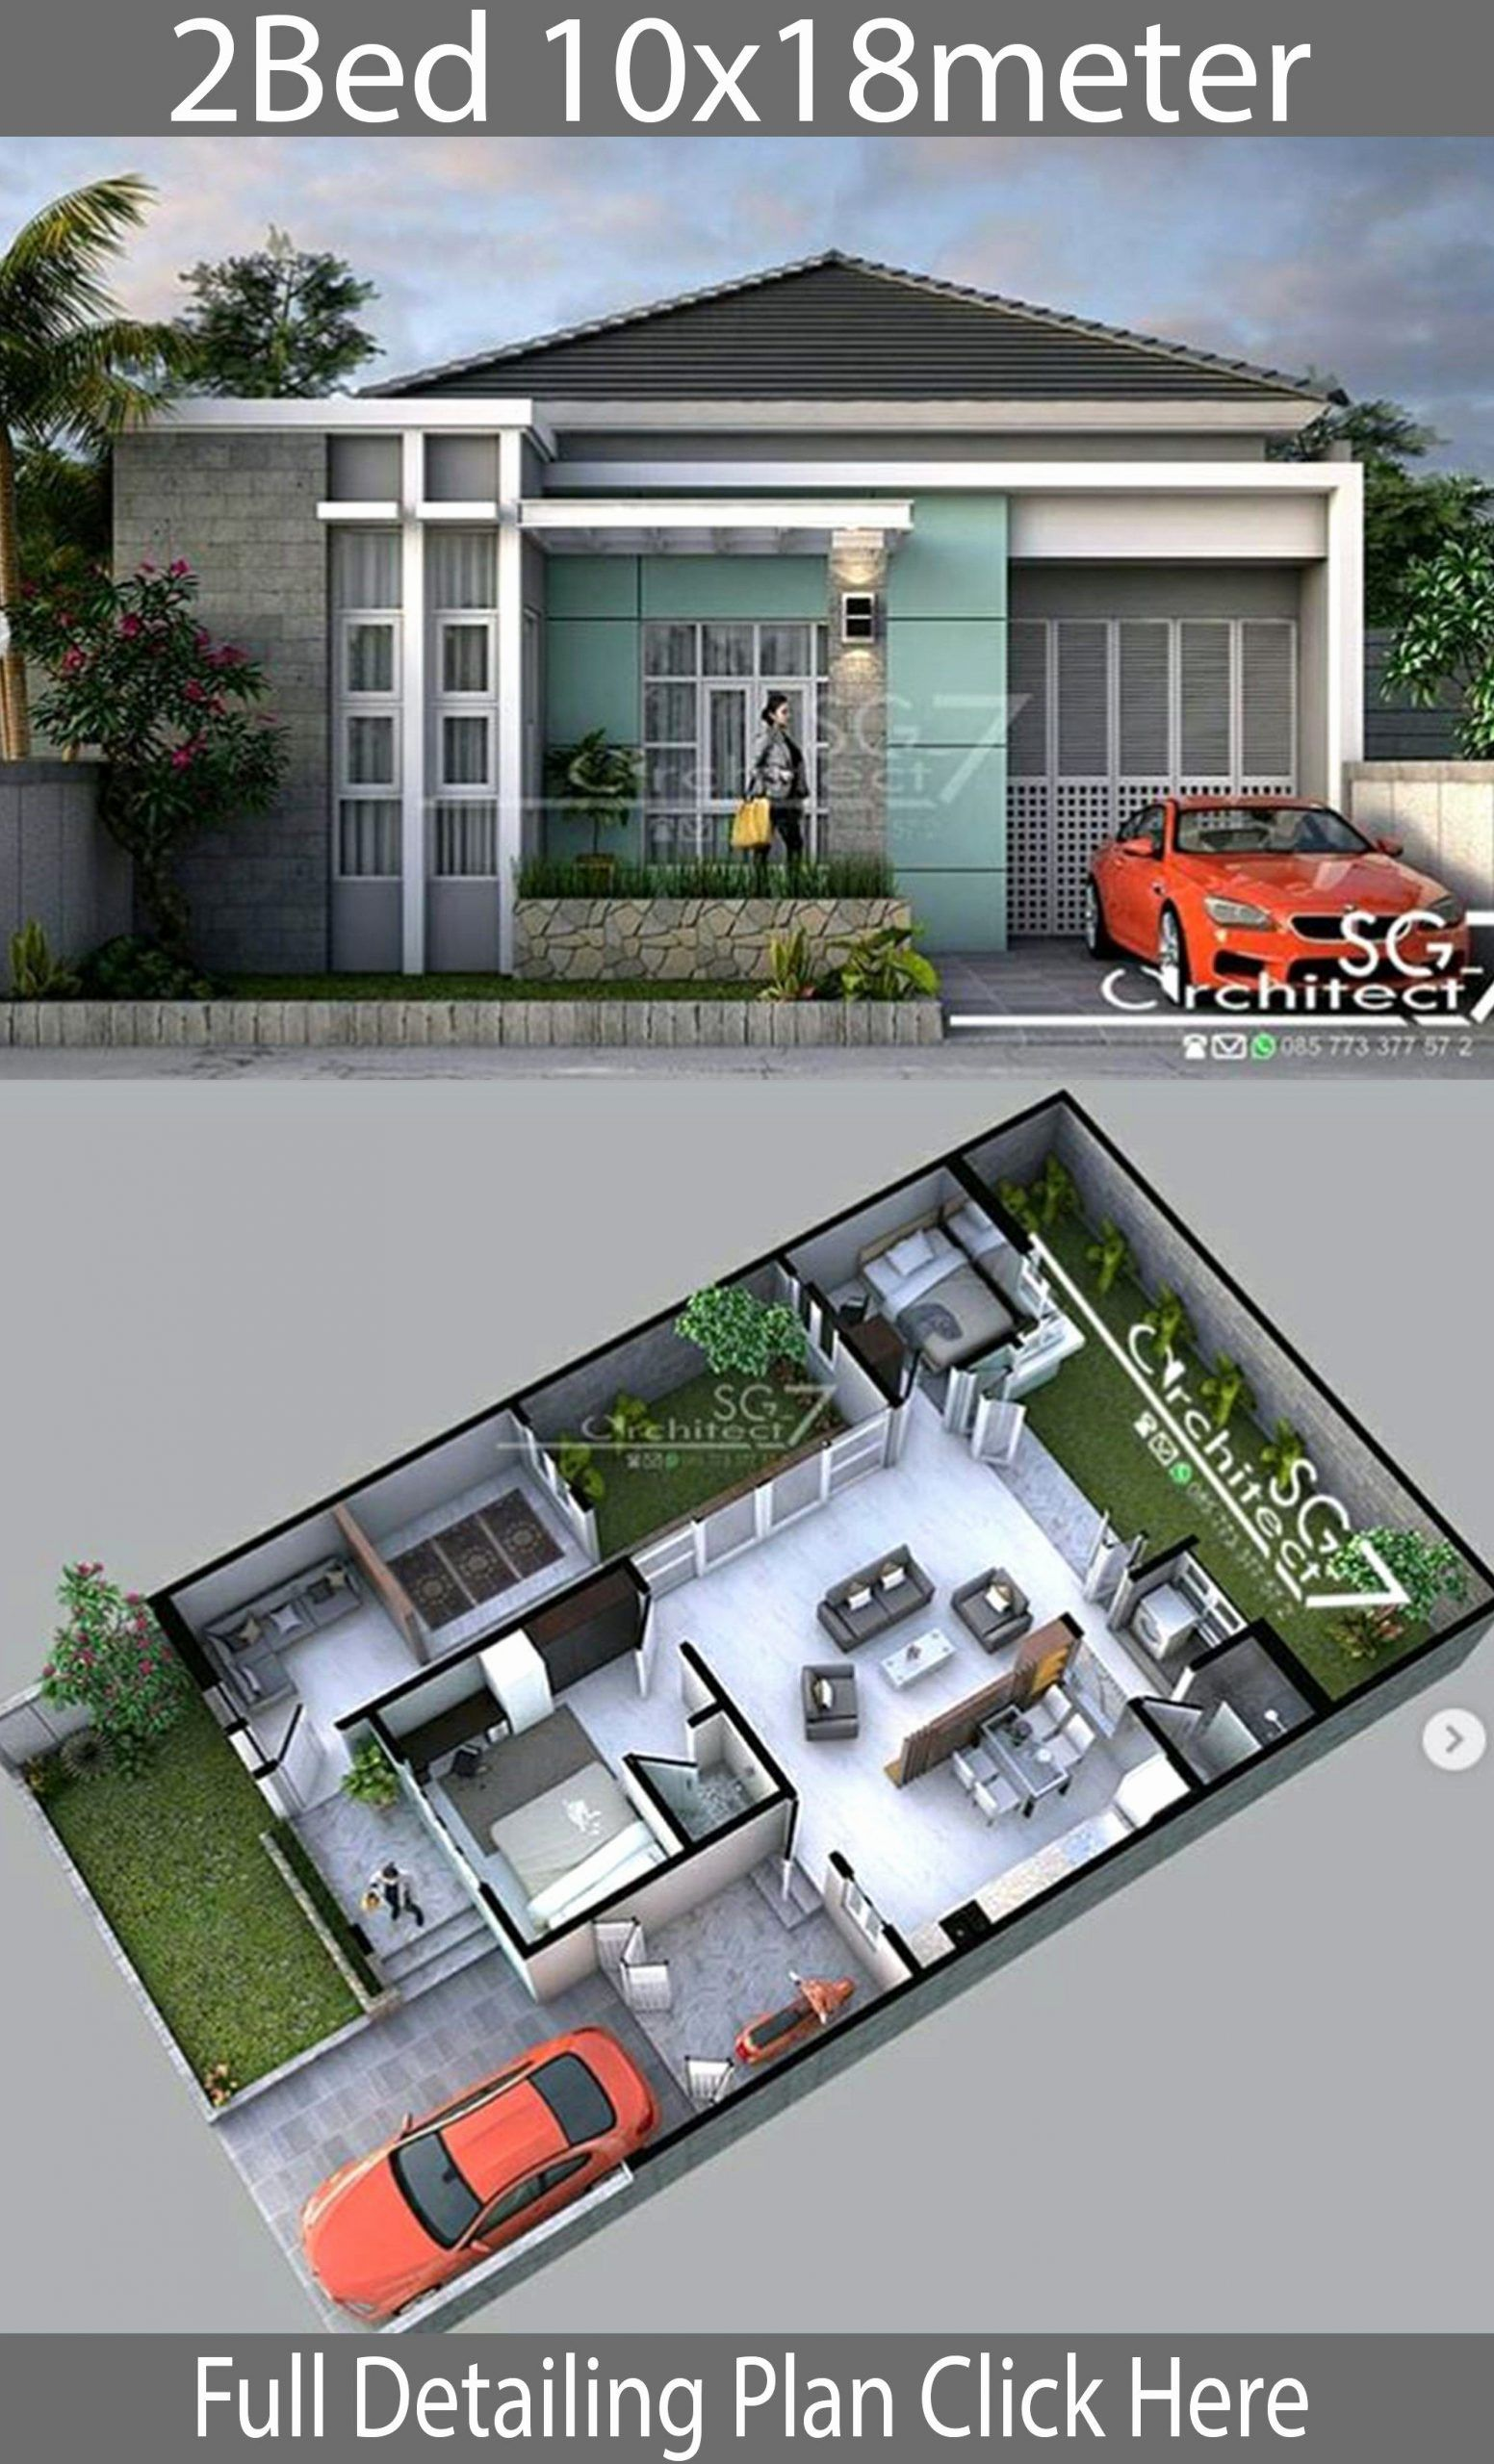 2 Bedroom House Design Ideas Inspirational 2 Bedrooms Home Design Plan 10 Small House Design Architecture House Architecture Design Small House Design Exterior